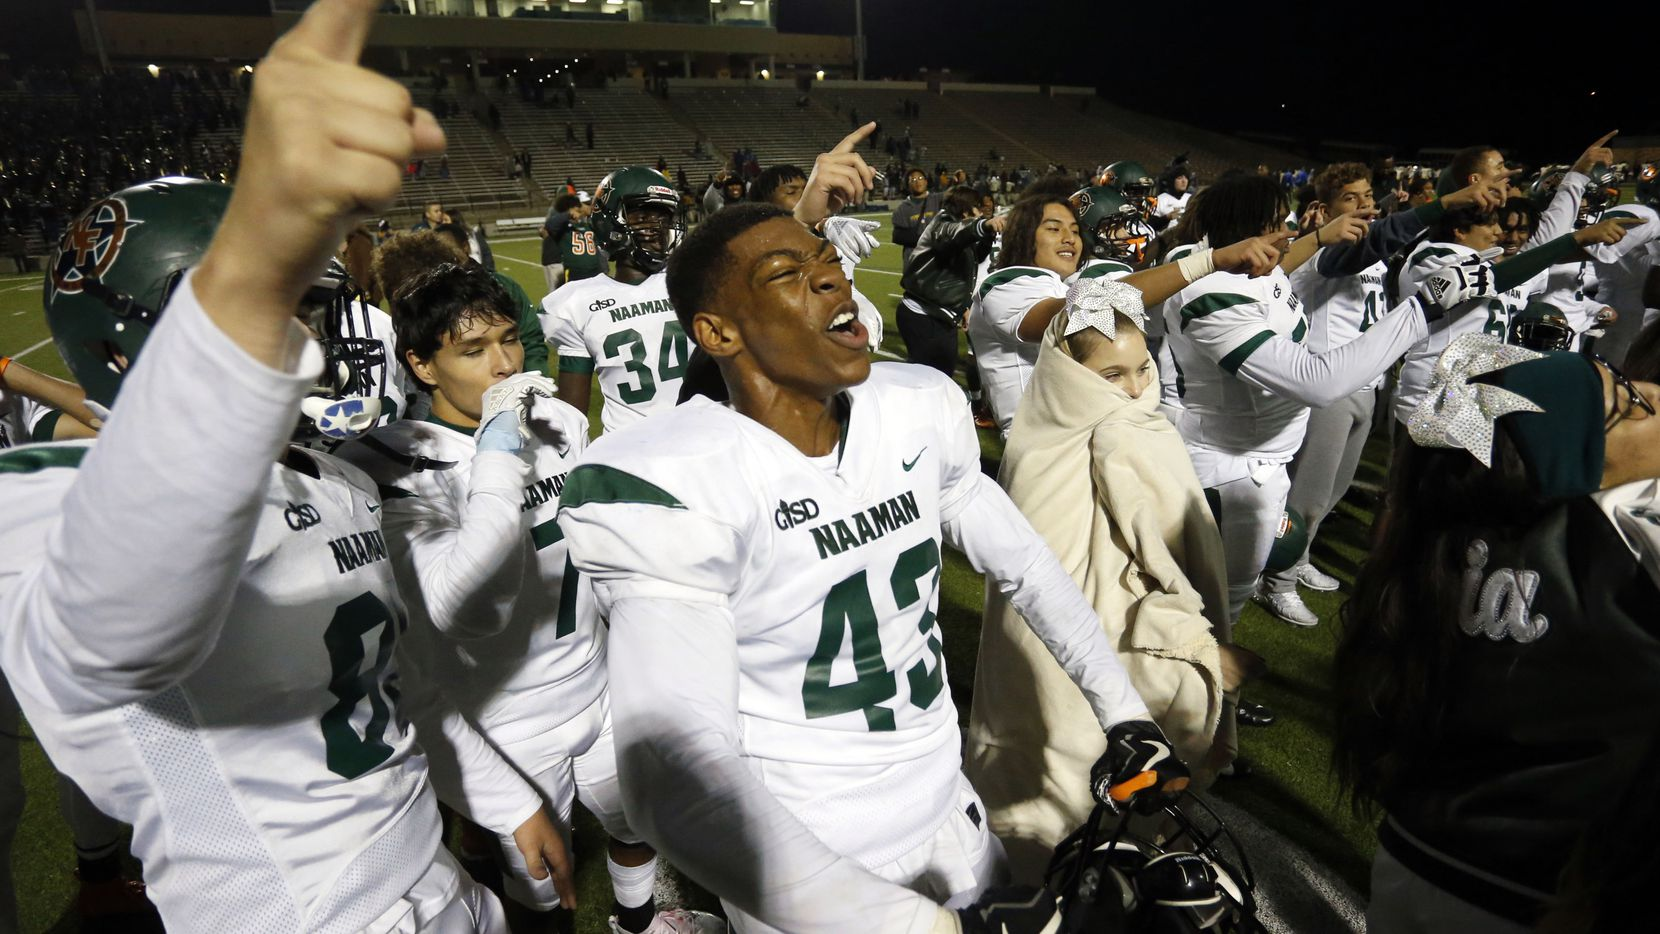 Naaman Forest players, including Nick Abengowe (43), celebrate their 42-27 win over Lakeview Centennial in a high school football game at Homer B. Johnson Stadium on Friday, November 8, 2019.